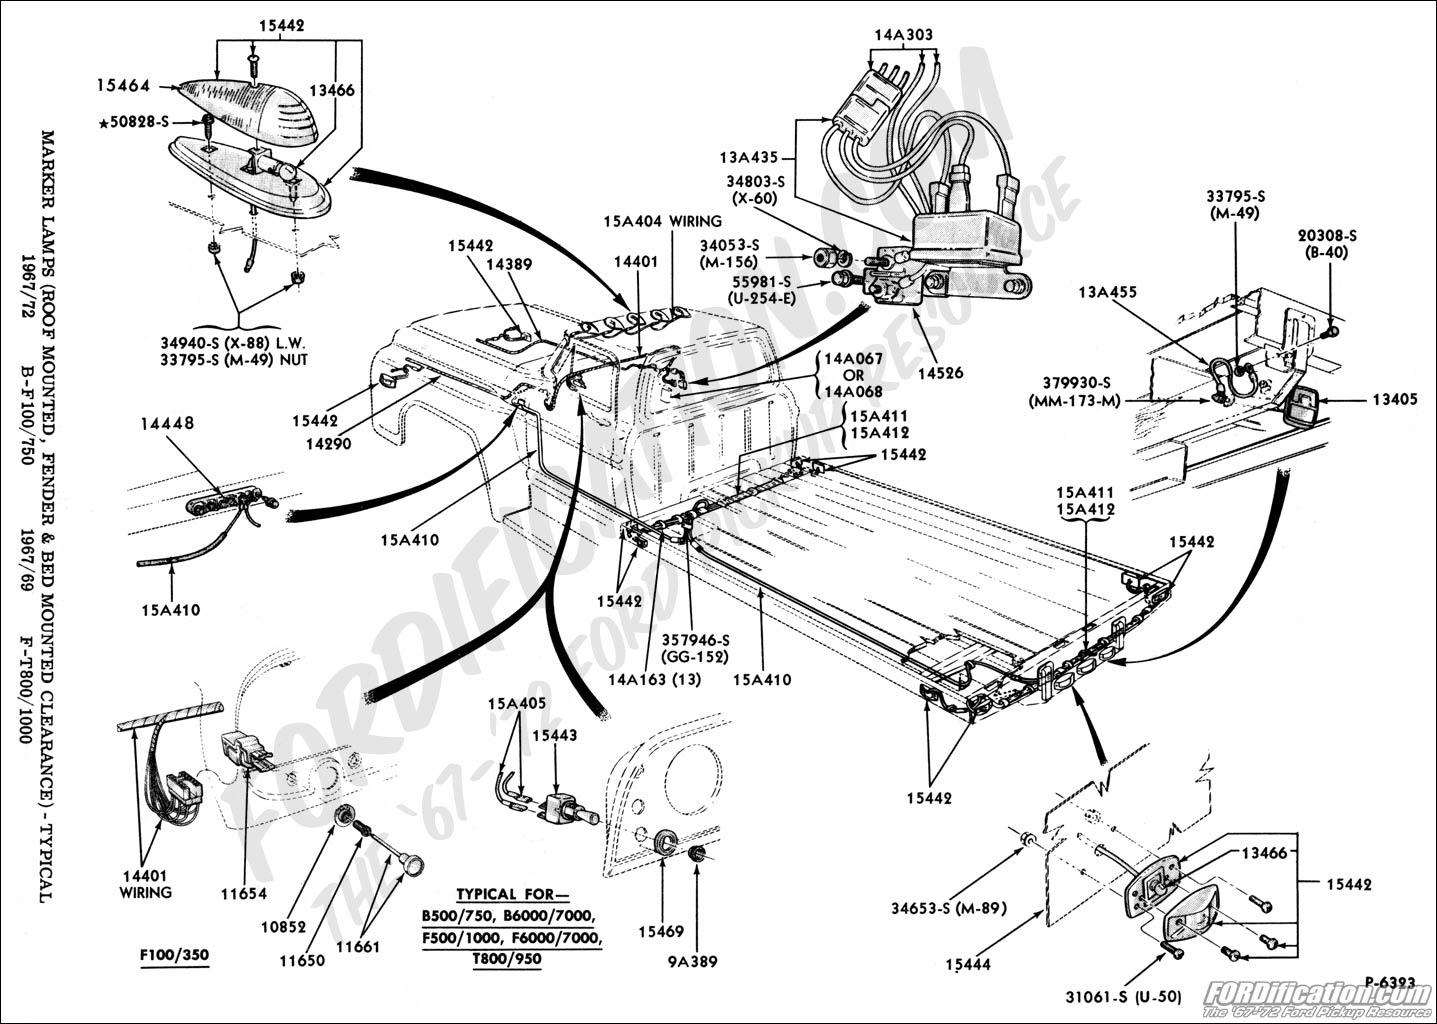 1968 F100 Wiring Diagram Simple Guide About Ford Truck Steering Column Technical Drawings And Schematics Section I Ignition